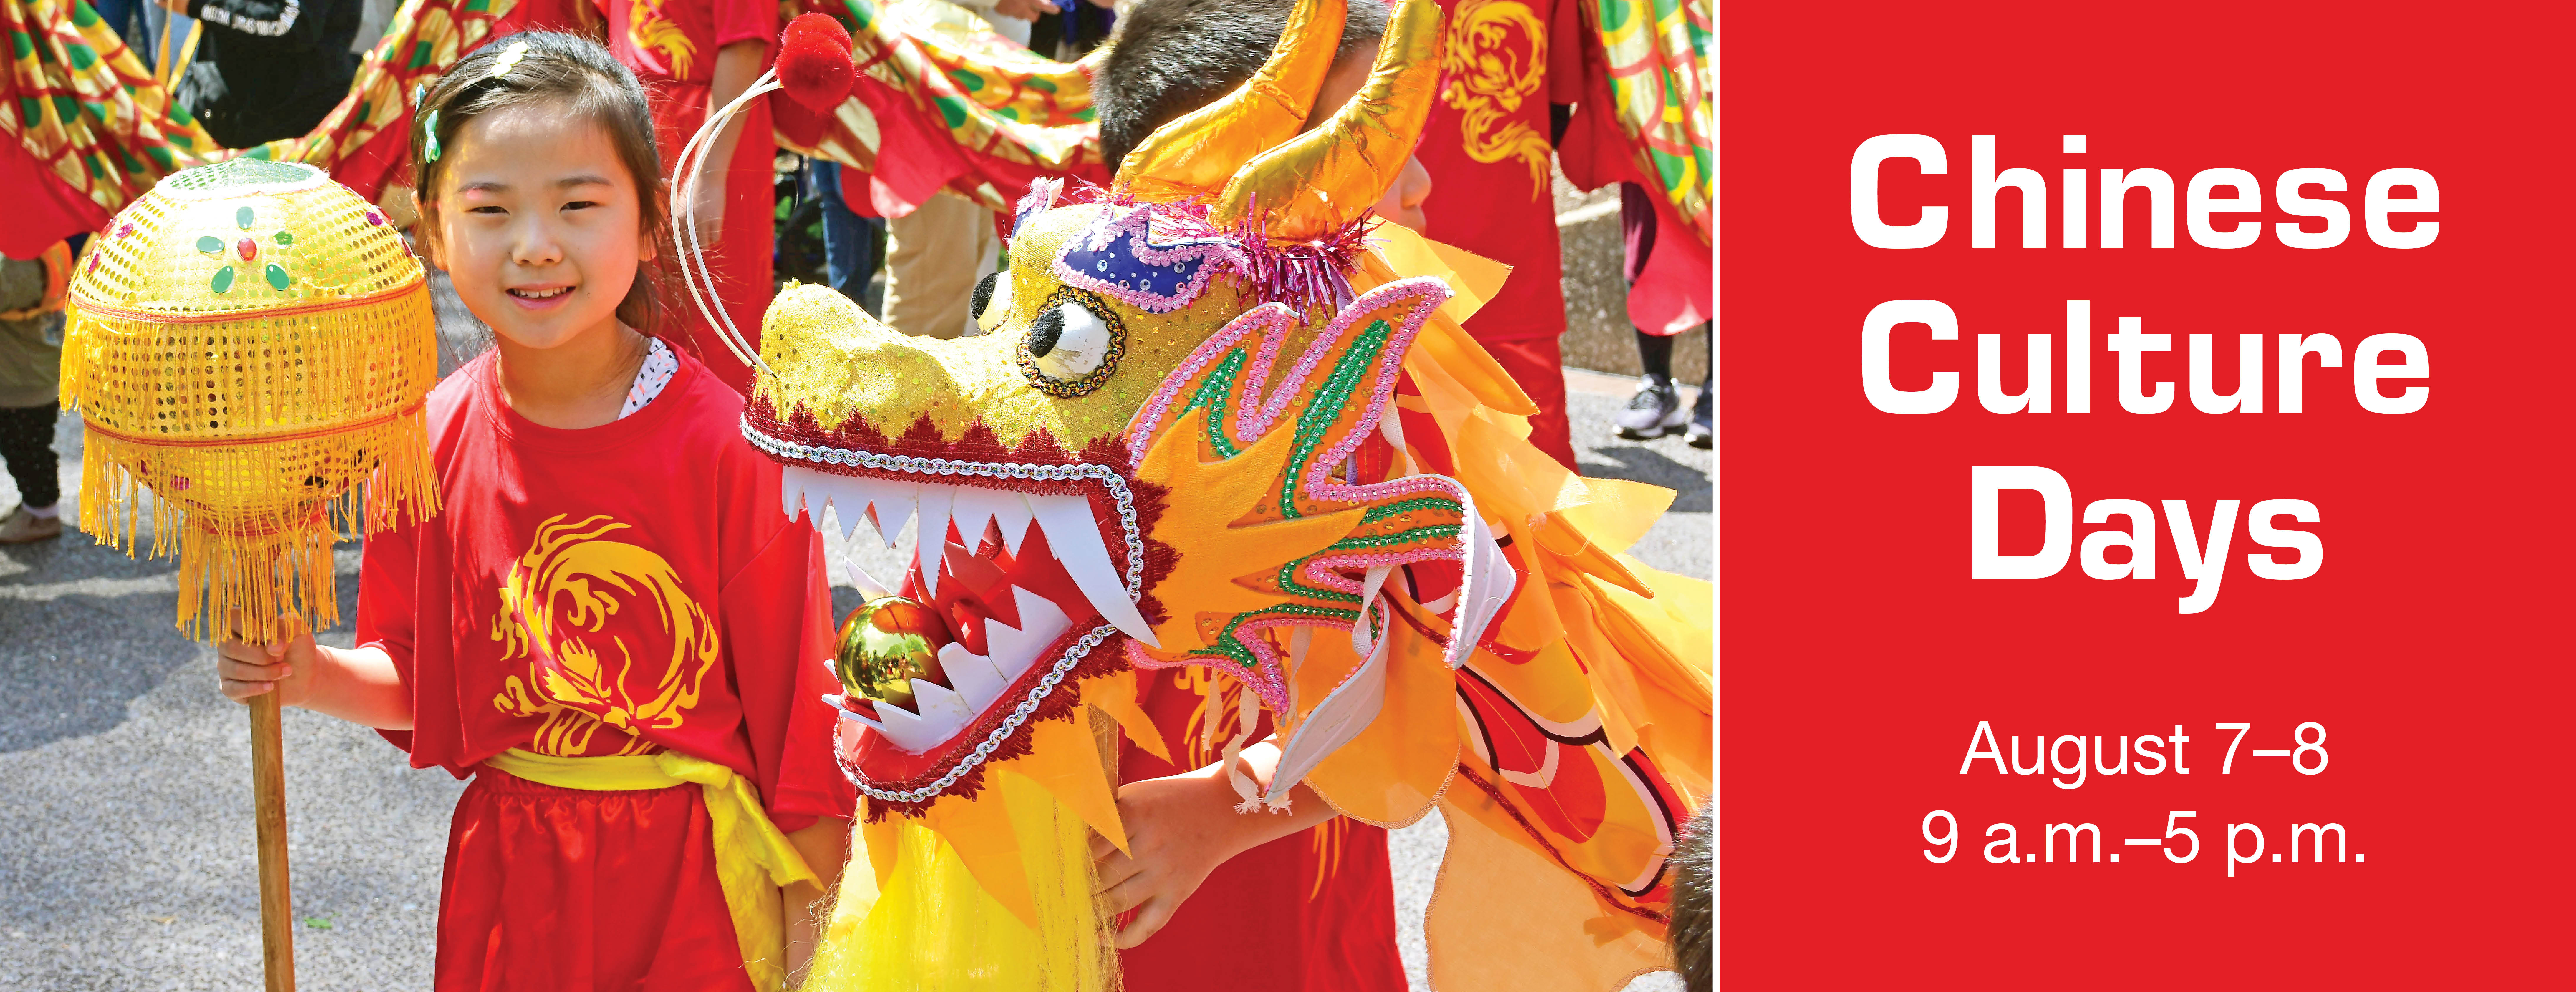 Chinese Culture Days Tickets   August 7 and 8, 2021   9 a.m. to 5 p.m.